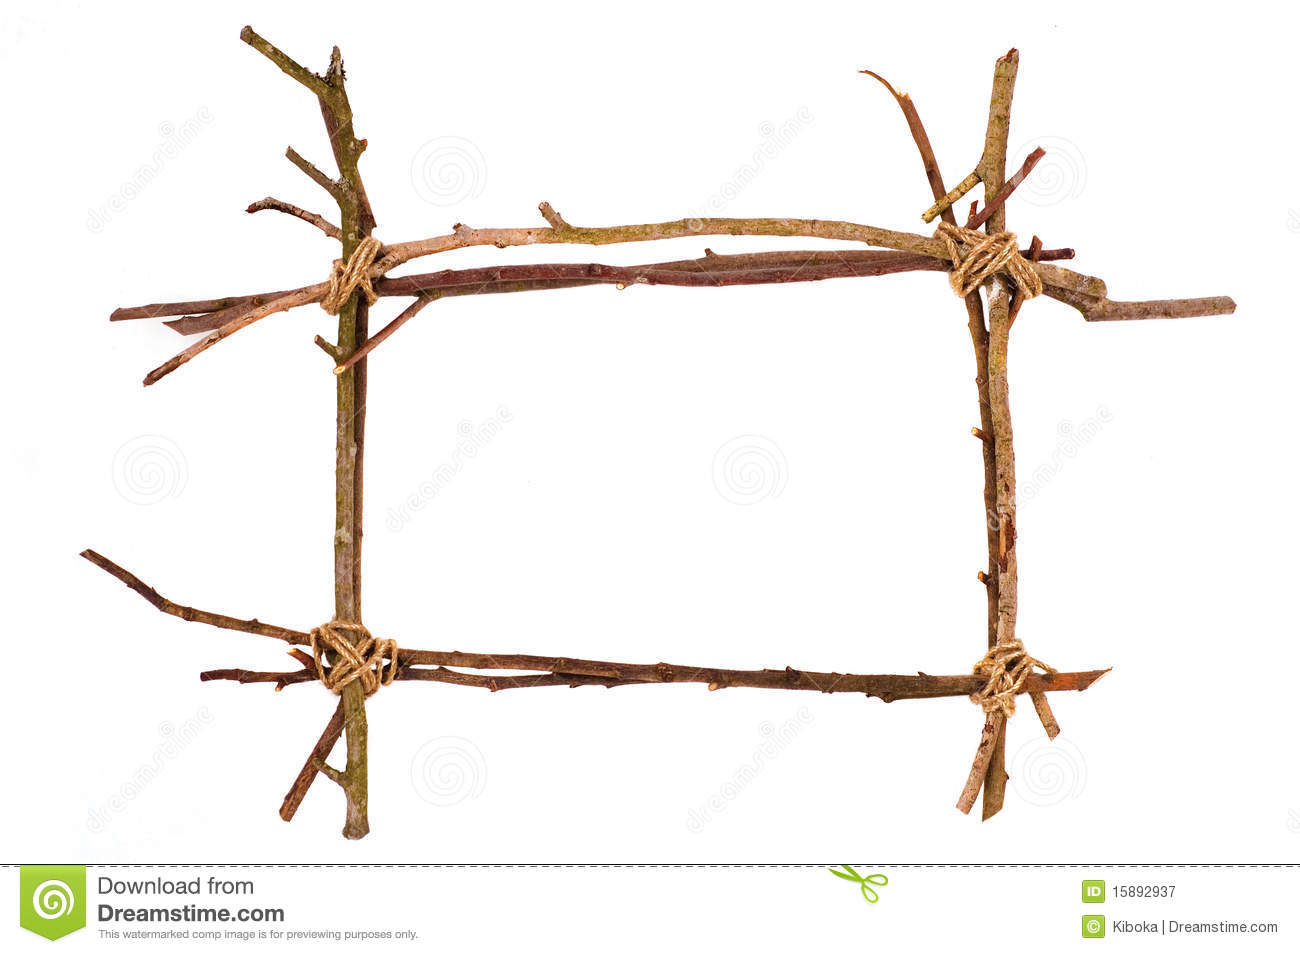 Royalty Free Stock Photography: Twig frame